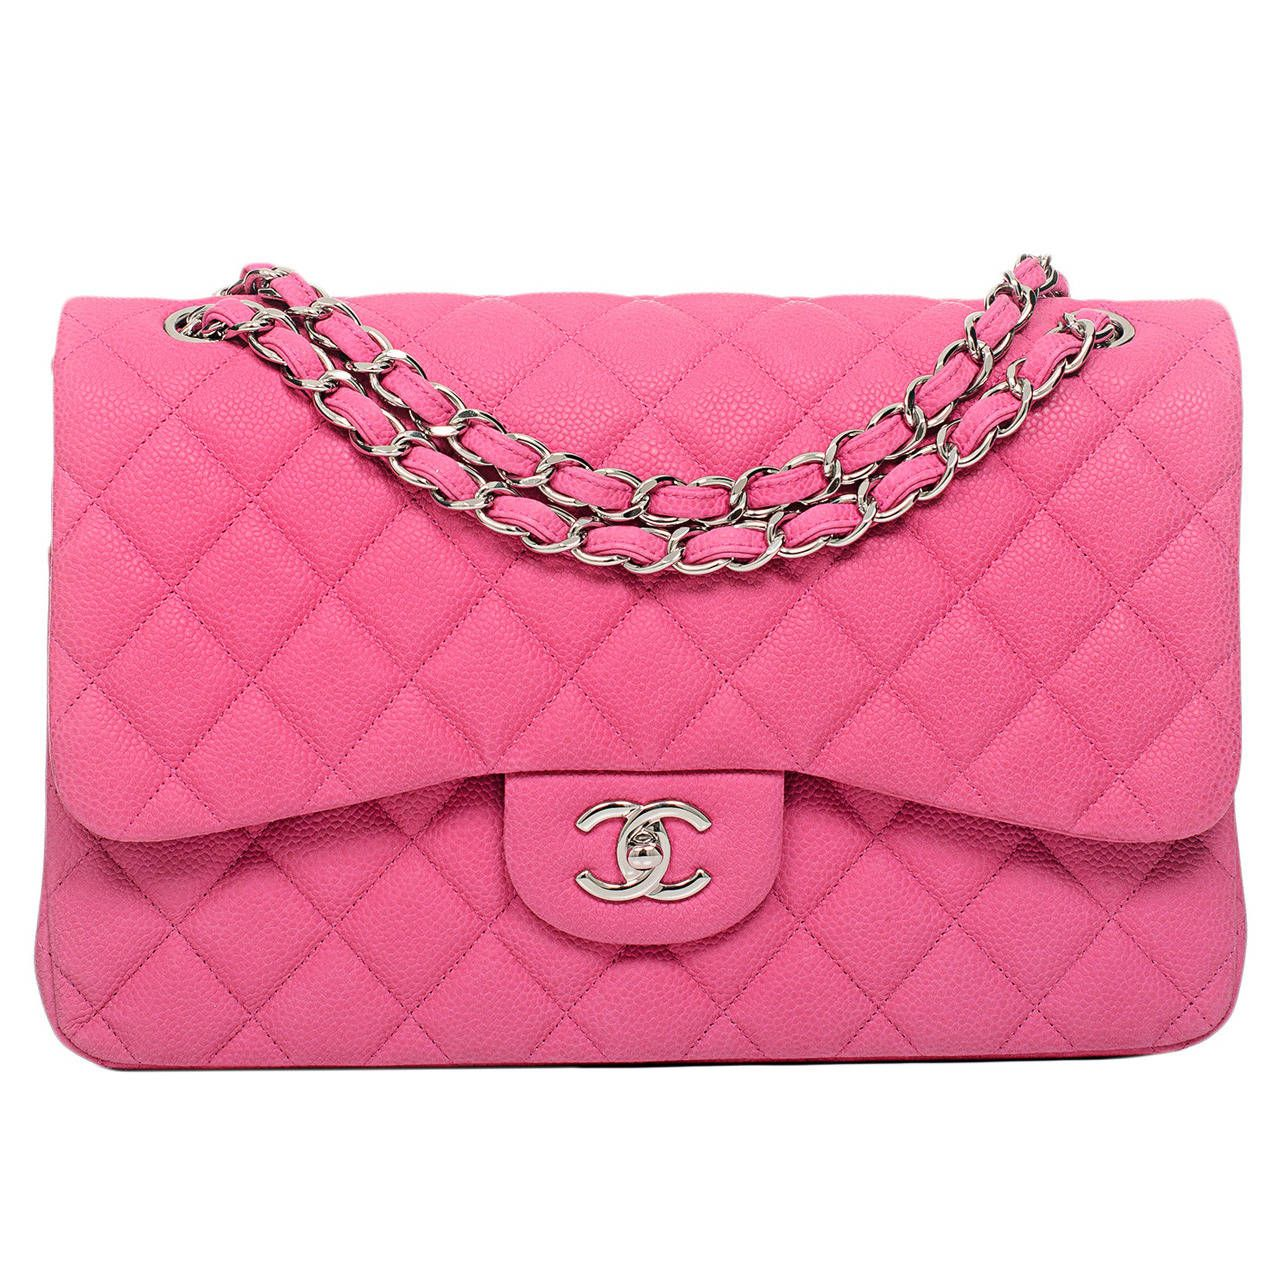 096f55c5c64e Chanel Hot Pink Matte Iridescent Caviar Jumbo Classic Double Flap Bag |  From a collection of